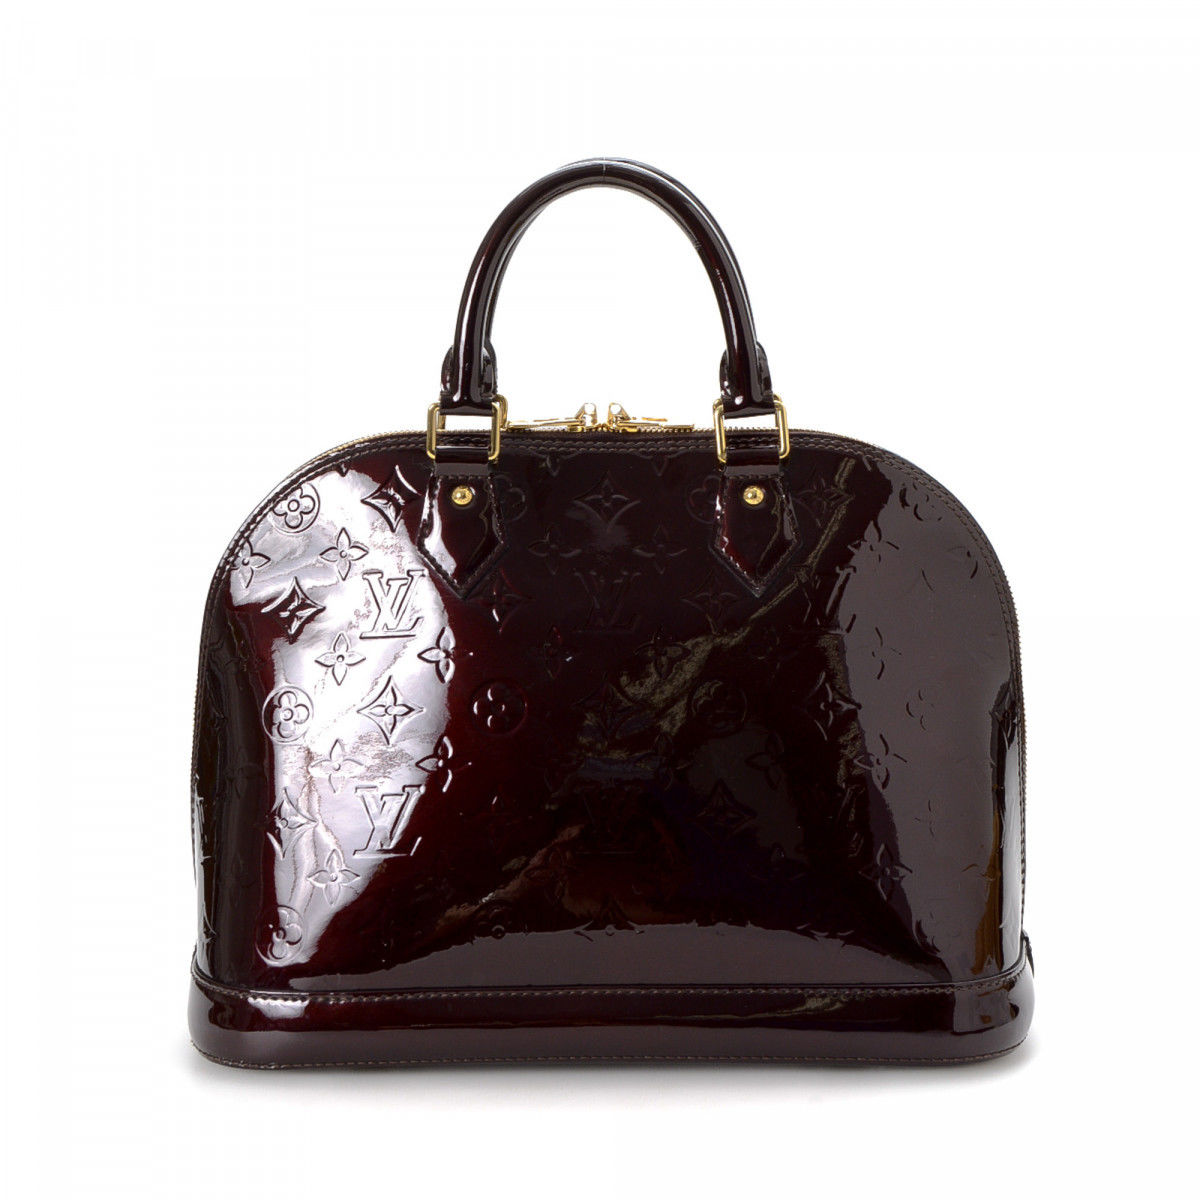 51a9556134 Louis Vuitton Alma PM with Strap Monogram Vernis Patent leather ...